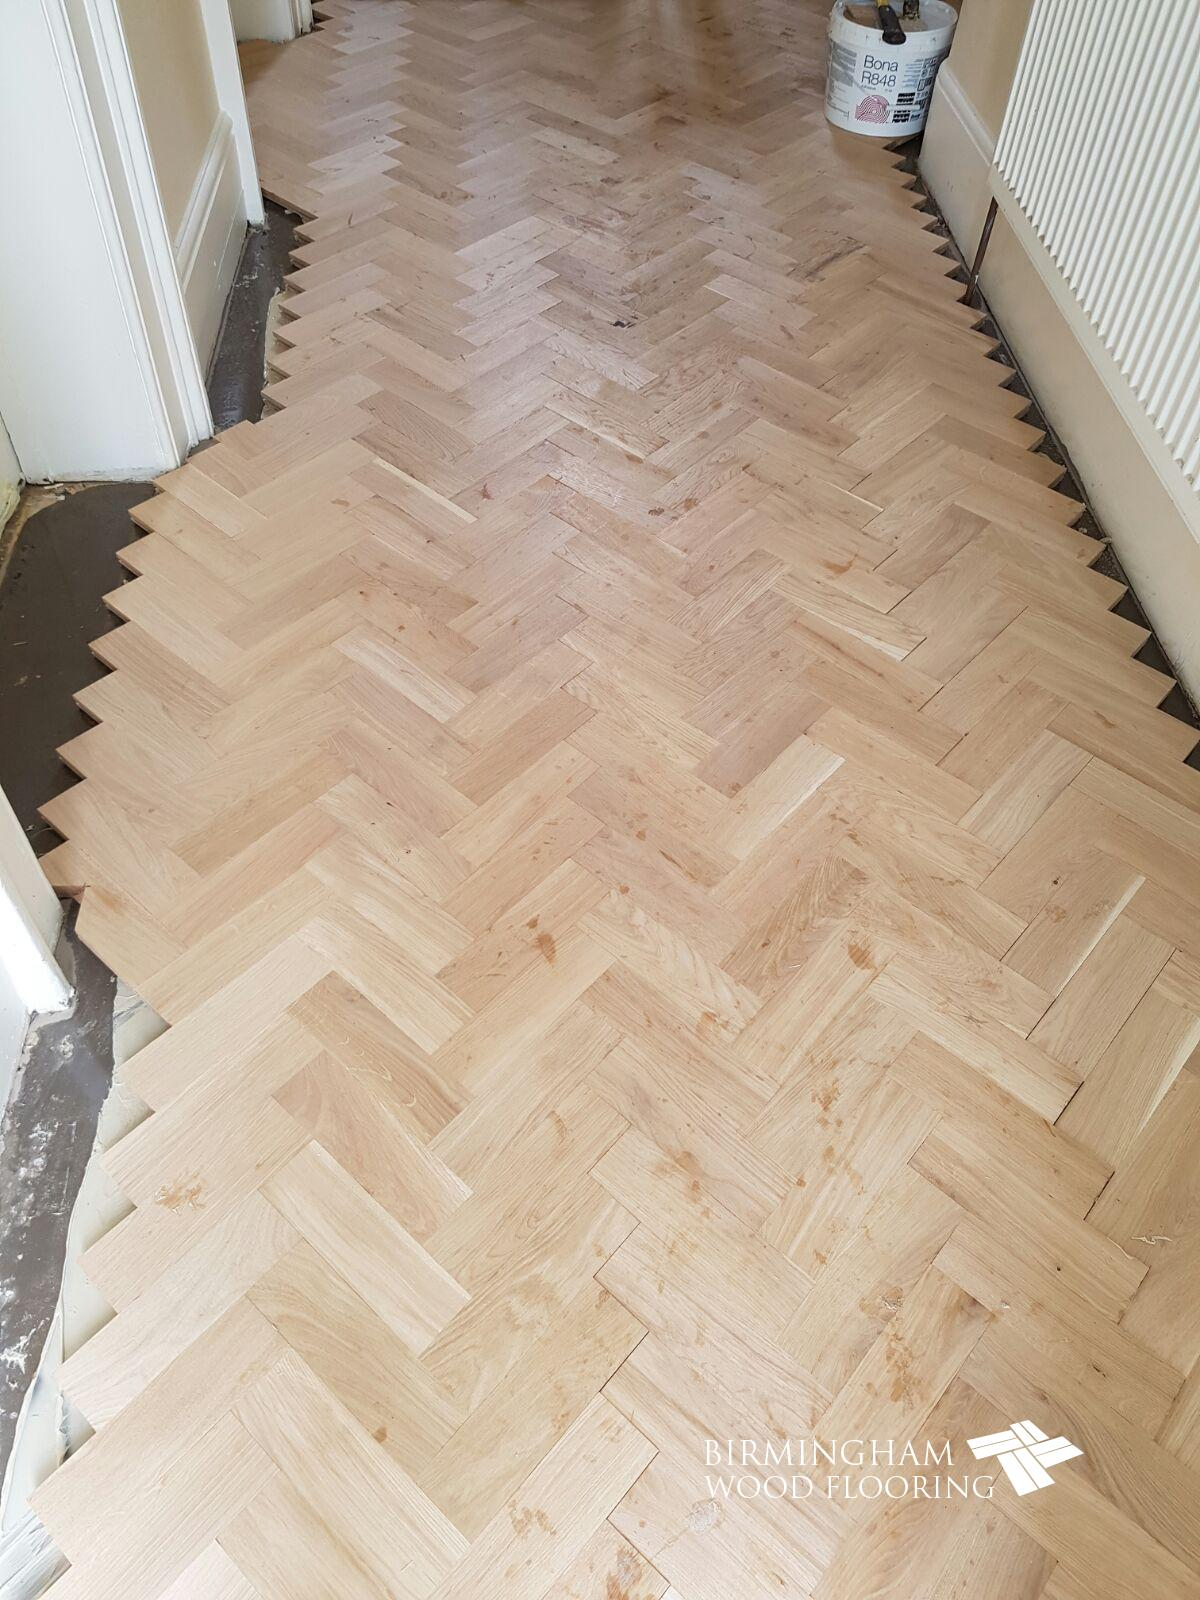 Parquet-floor-ready-to-have-the-Wenge-Feature-strip-and-border-installed-Edgbaston-Birmingham-2